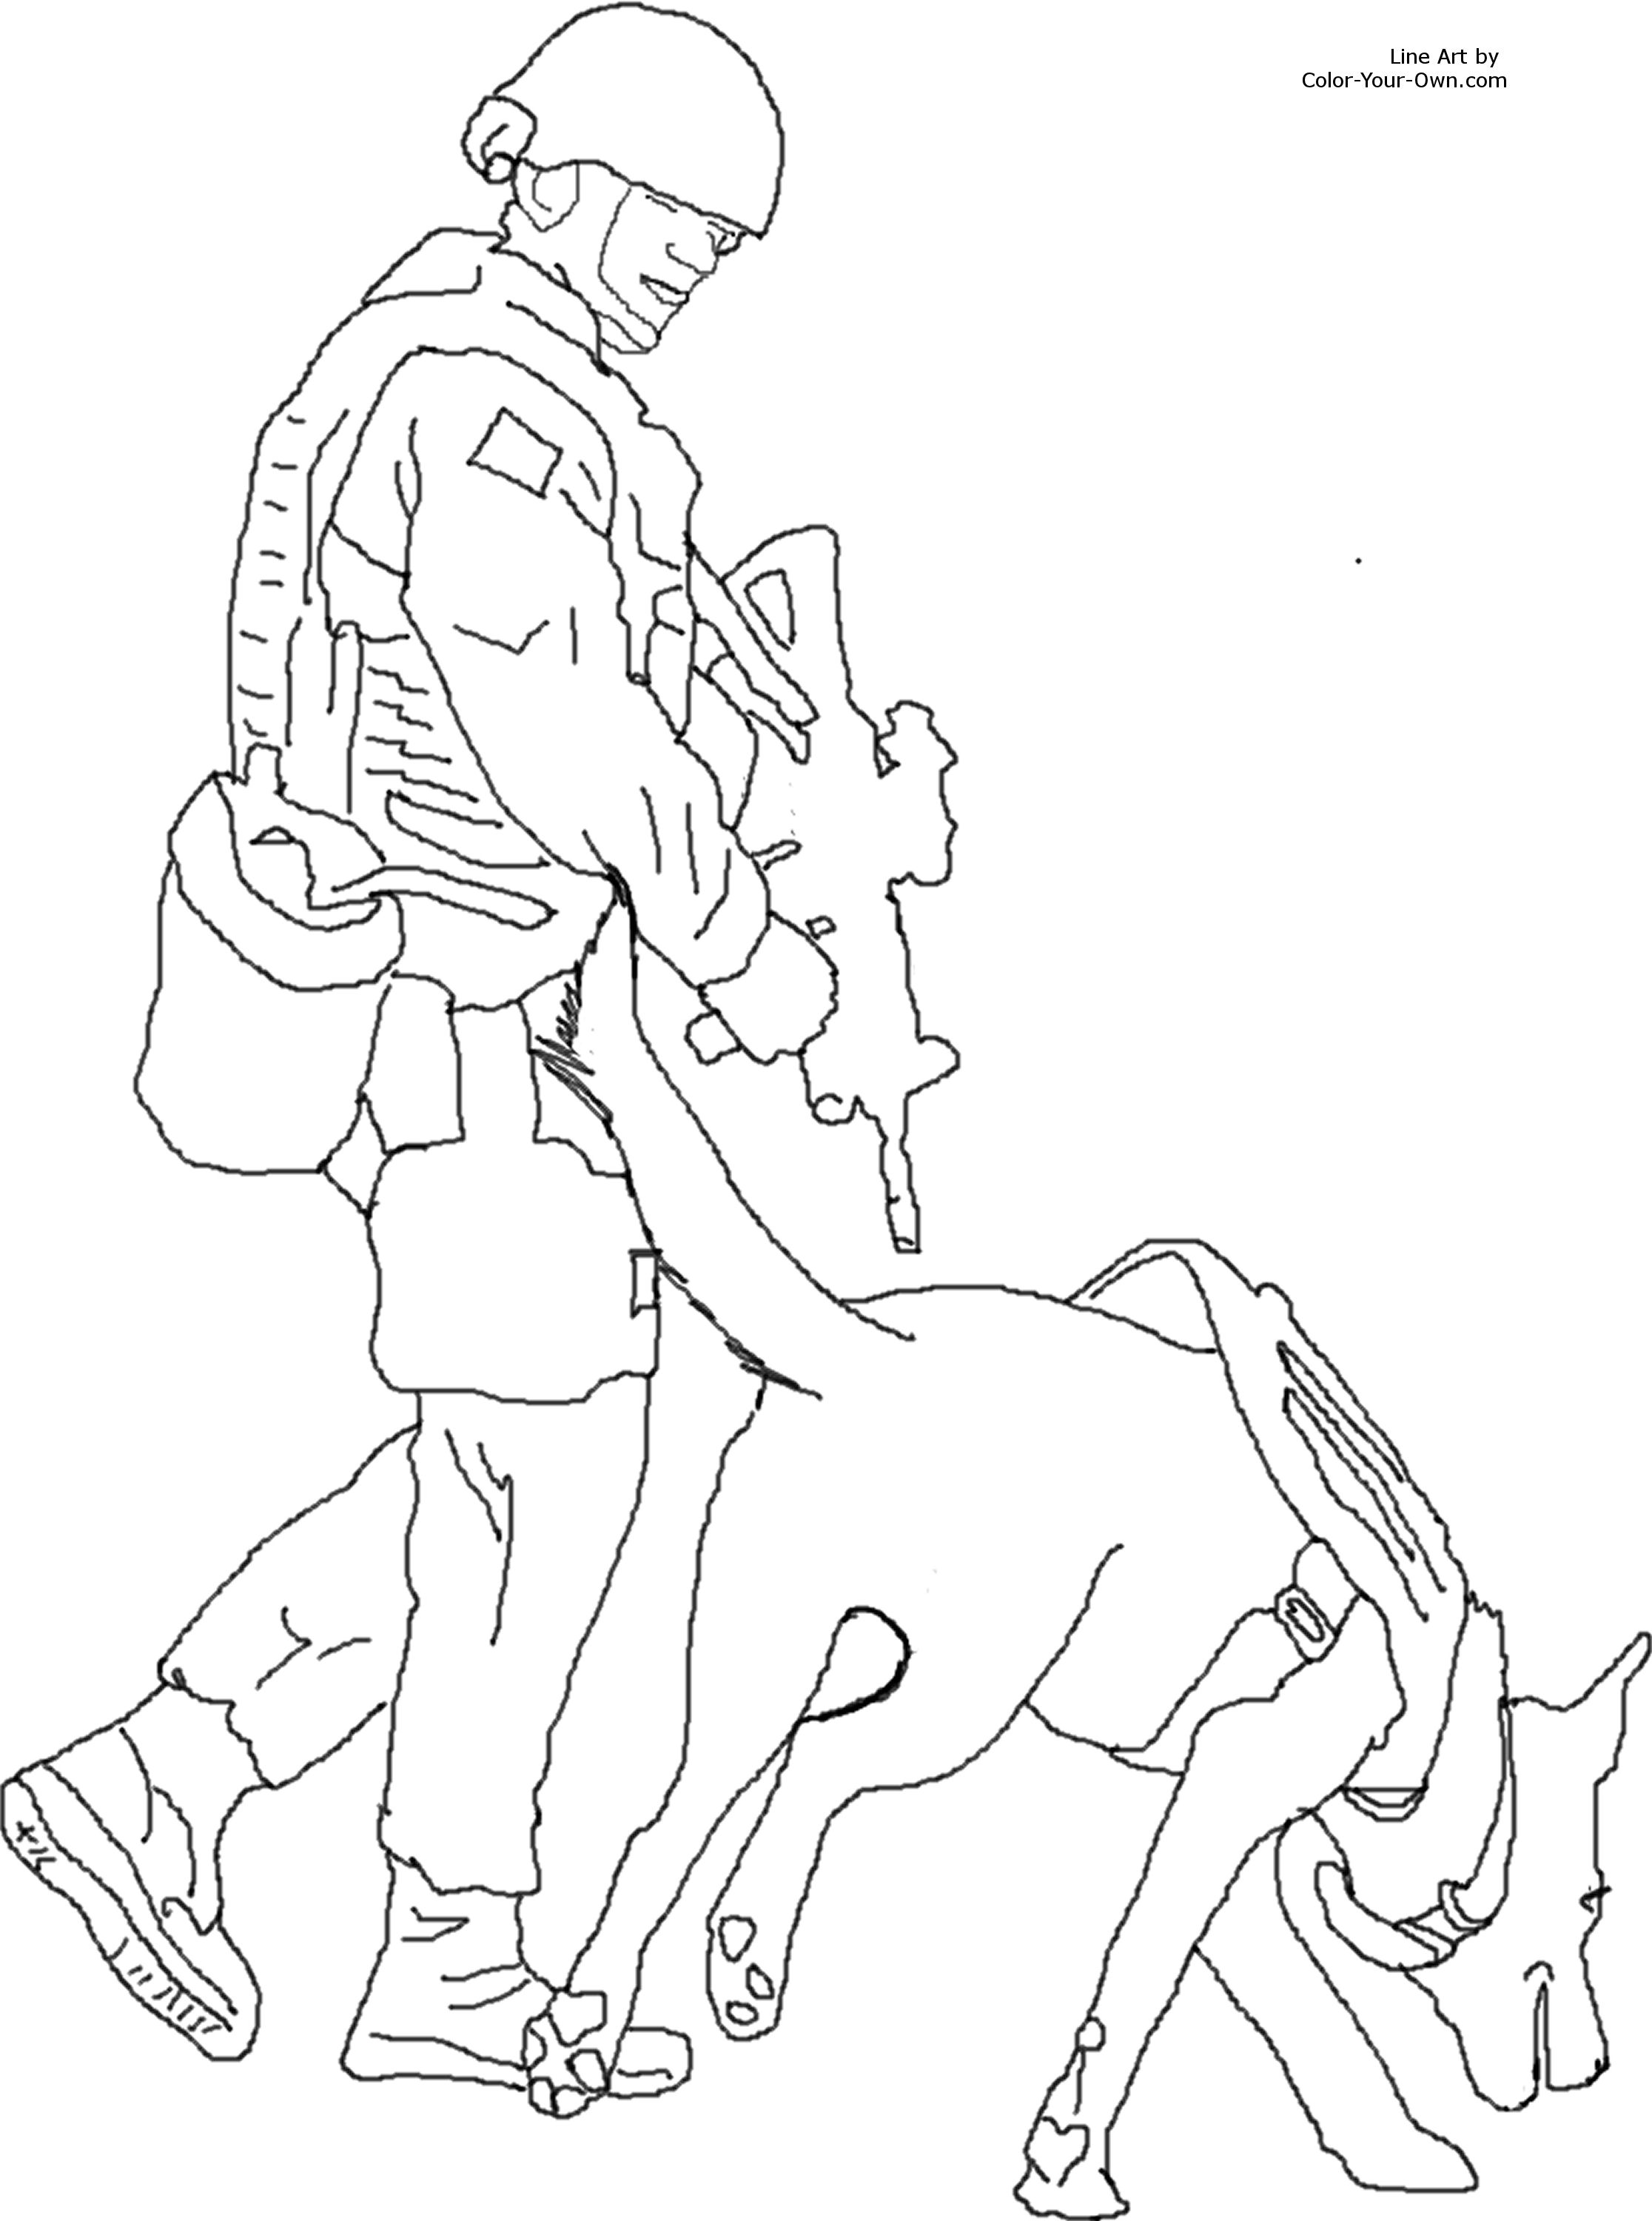 Bomb Detection Service Dog Coloring